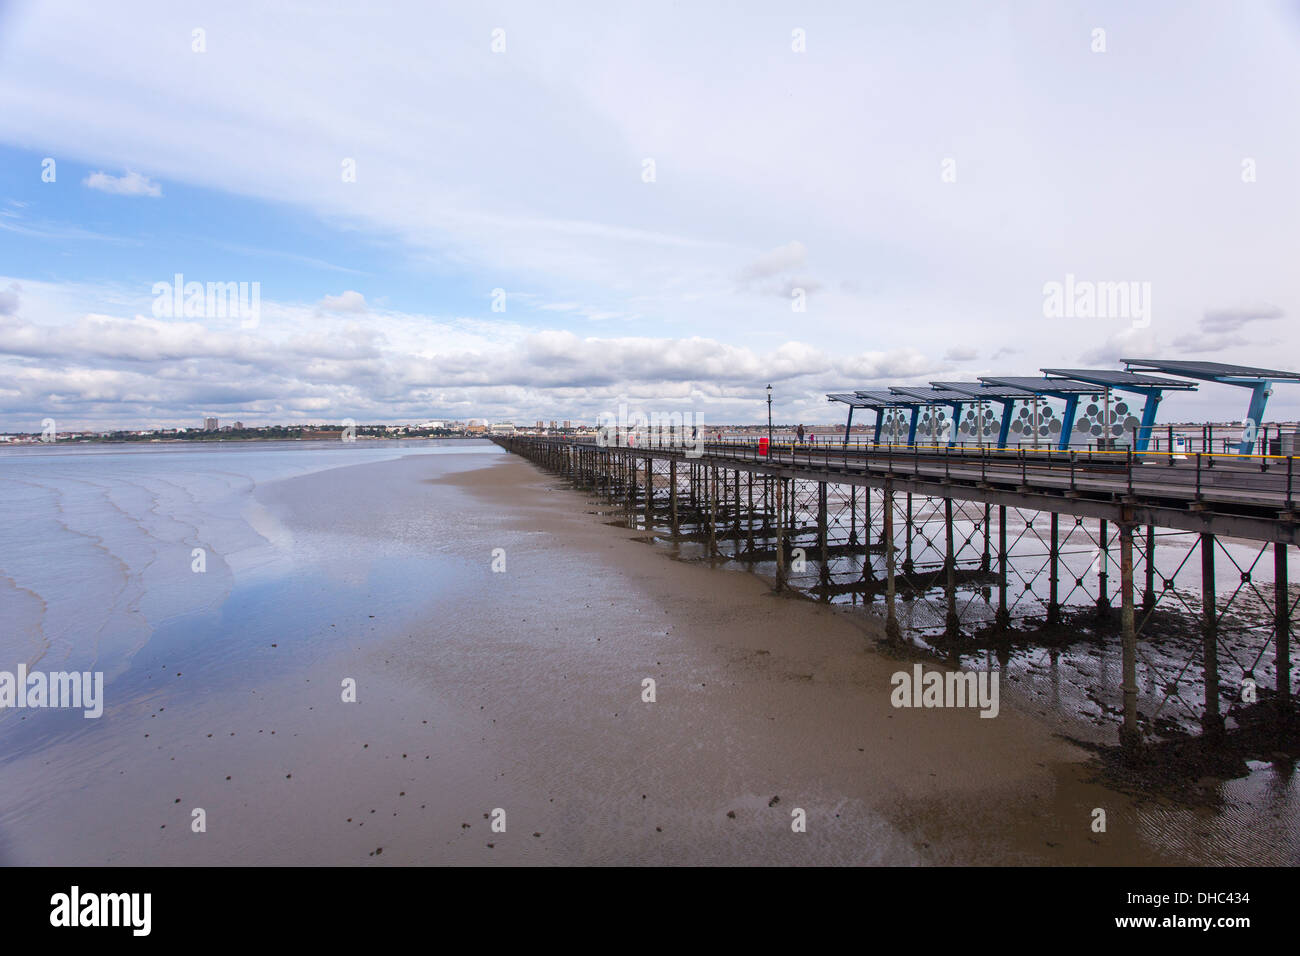 12/10/2013 Pier end train station on Southend pier. The longest pier in the World measuring 1.33 miles into the Thames river. - Stock Image